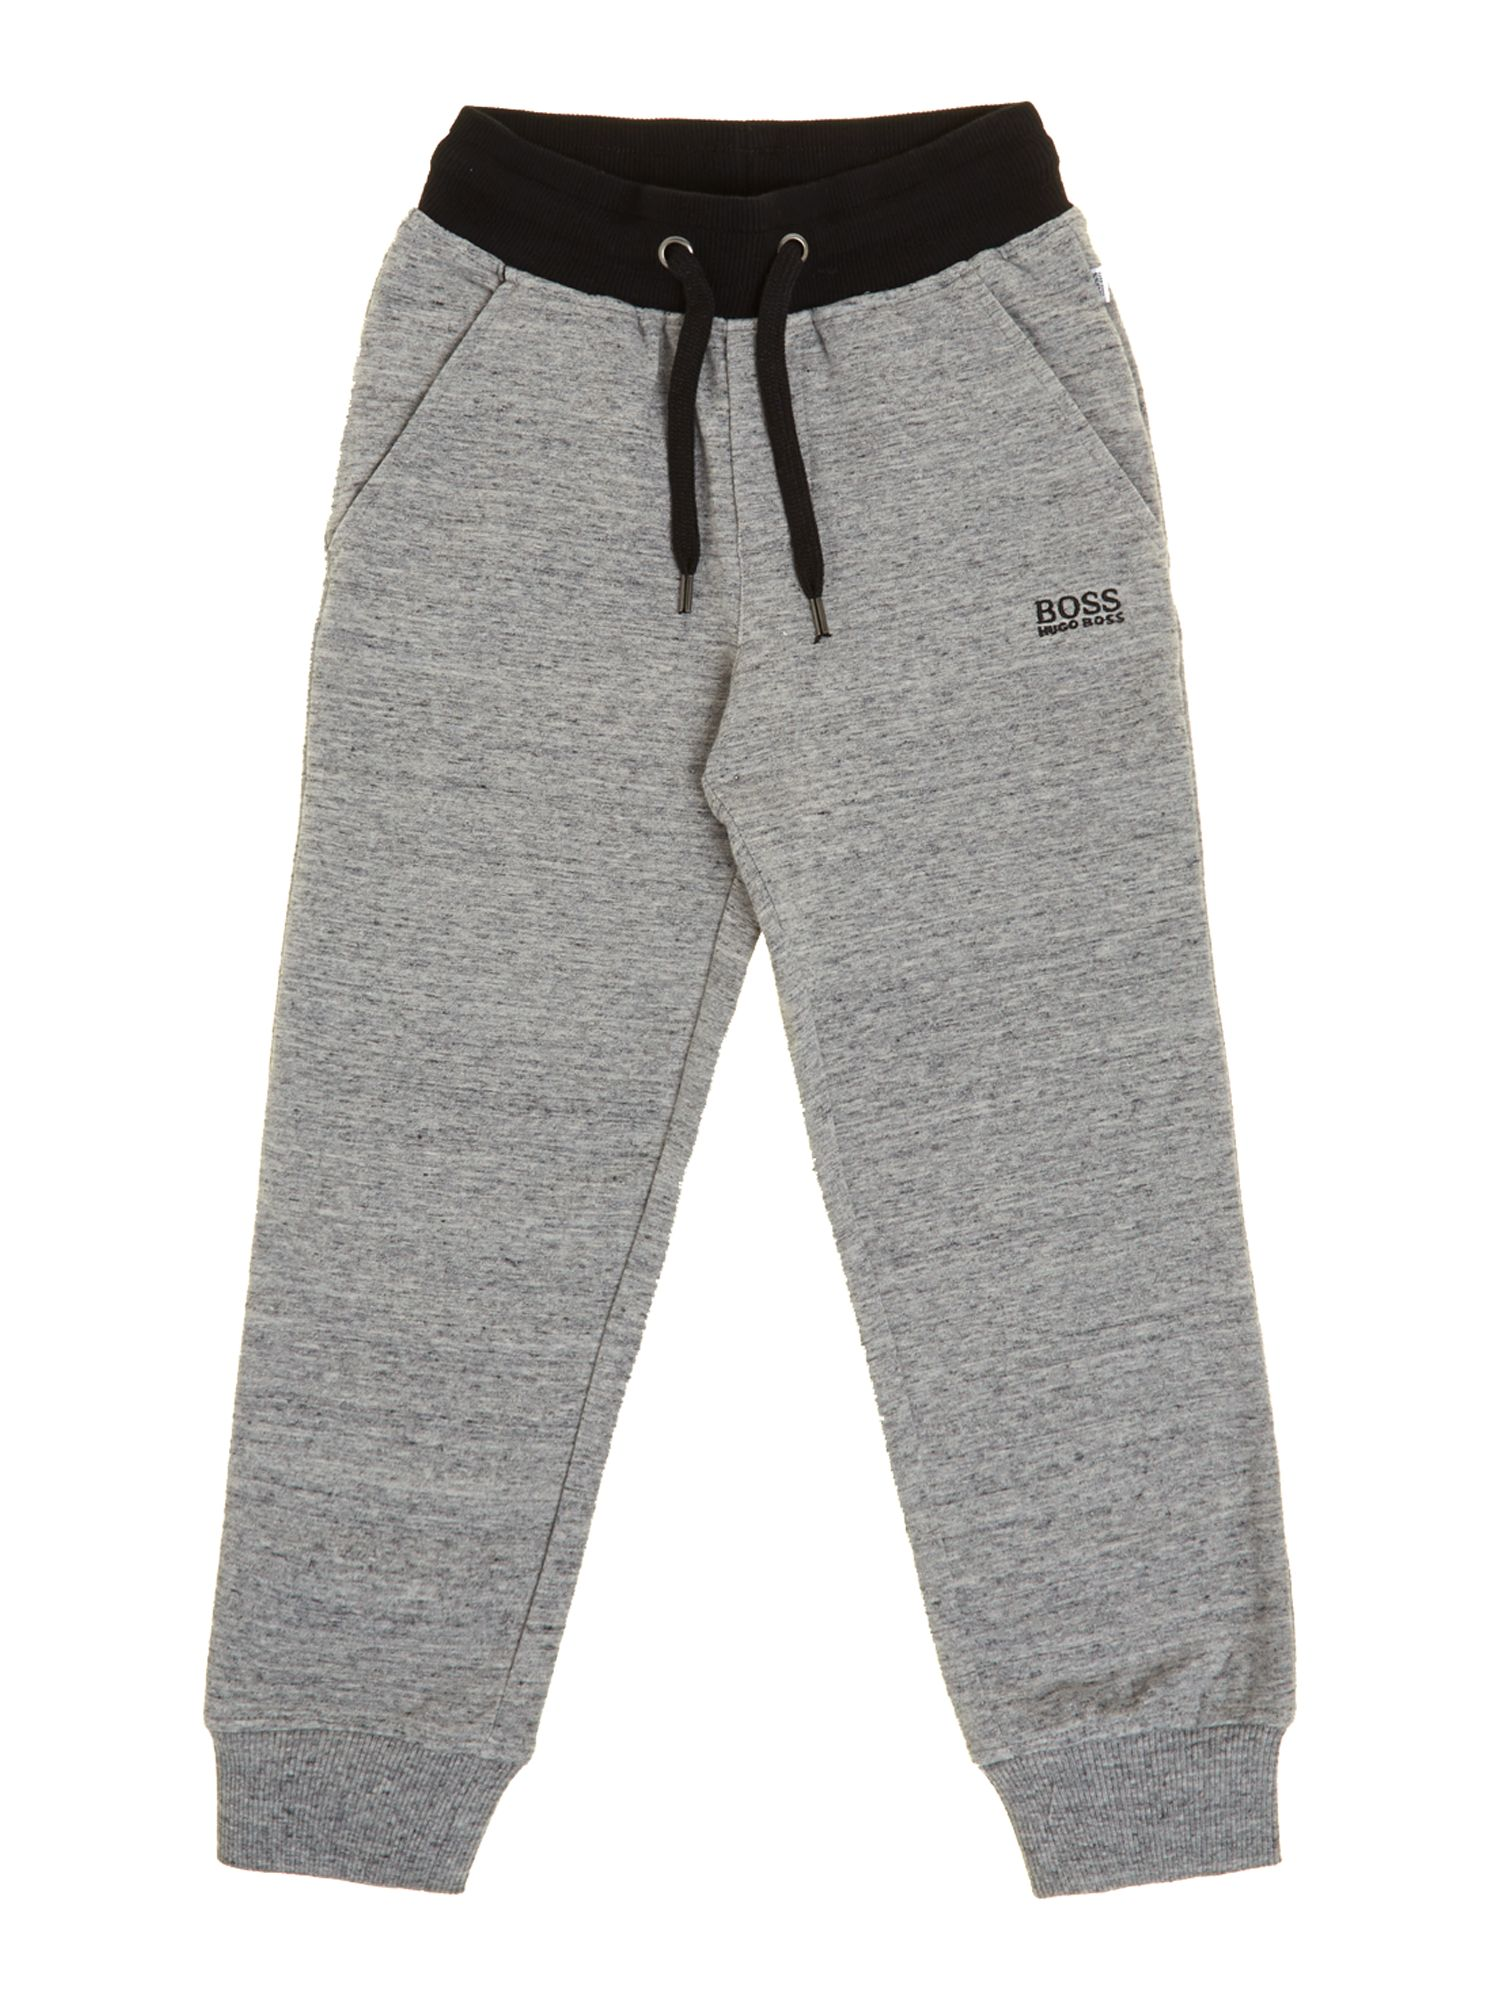 Boy`s cotton pique jogging bottoms